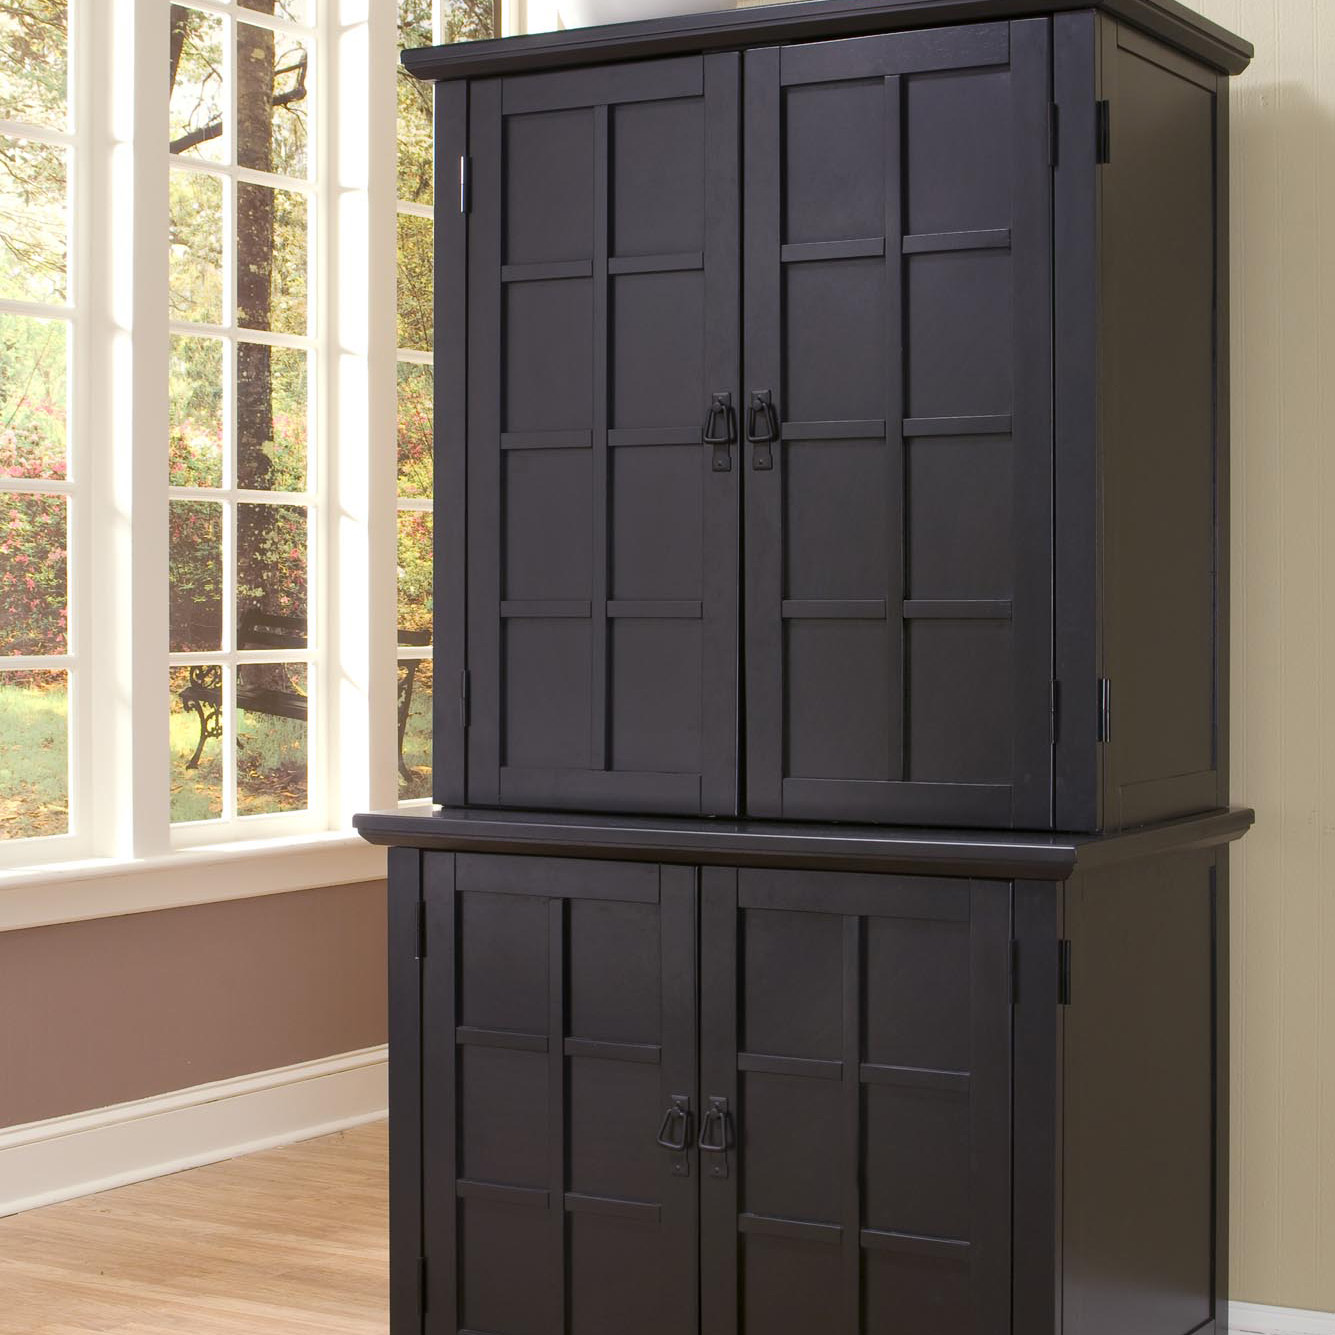 Charmant Home Styles Computer Armoire Home Styles Arts And Crafts Compact Computer  Armoire With